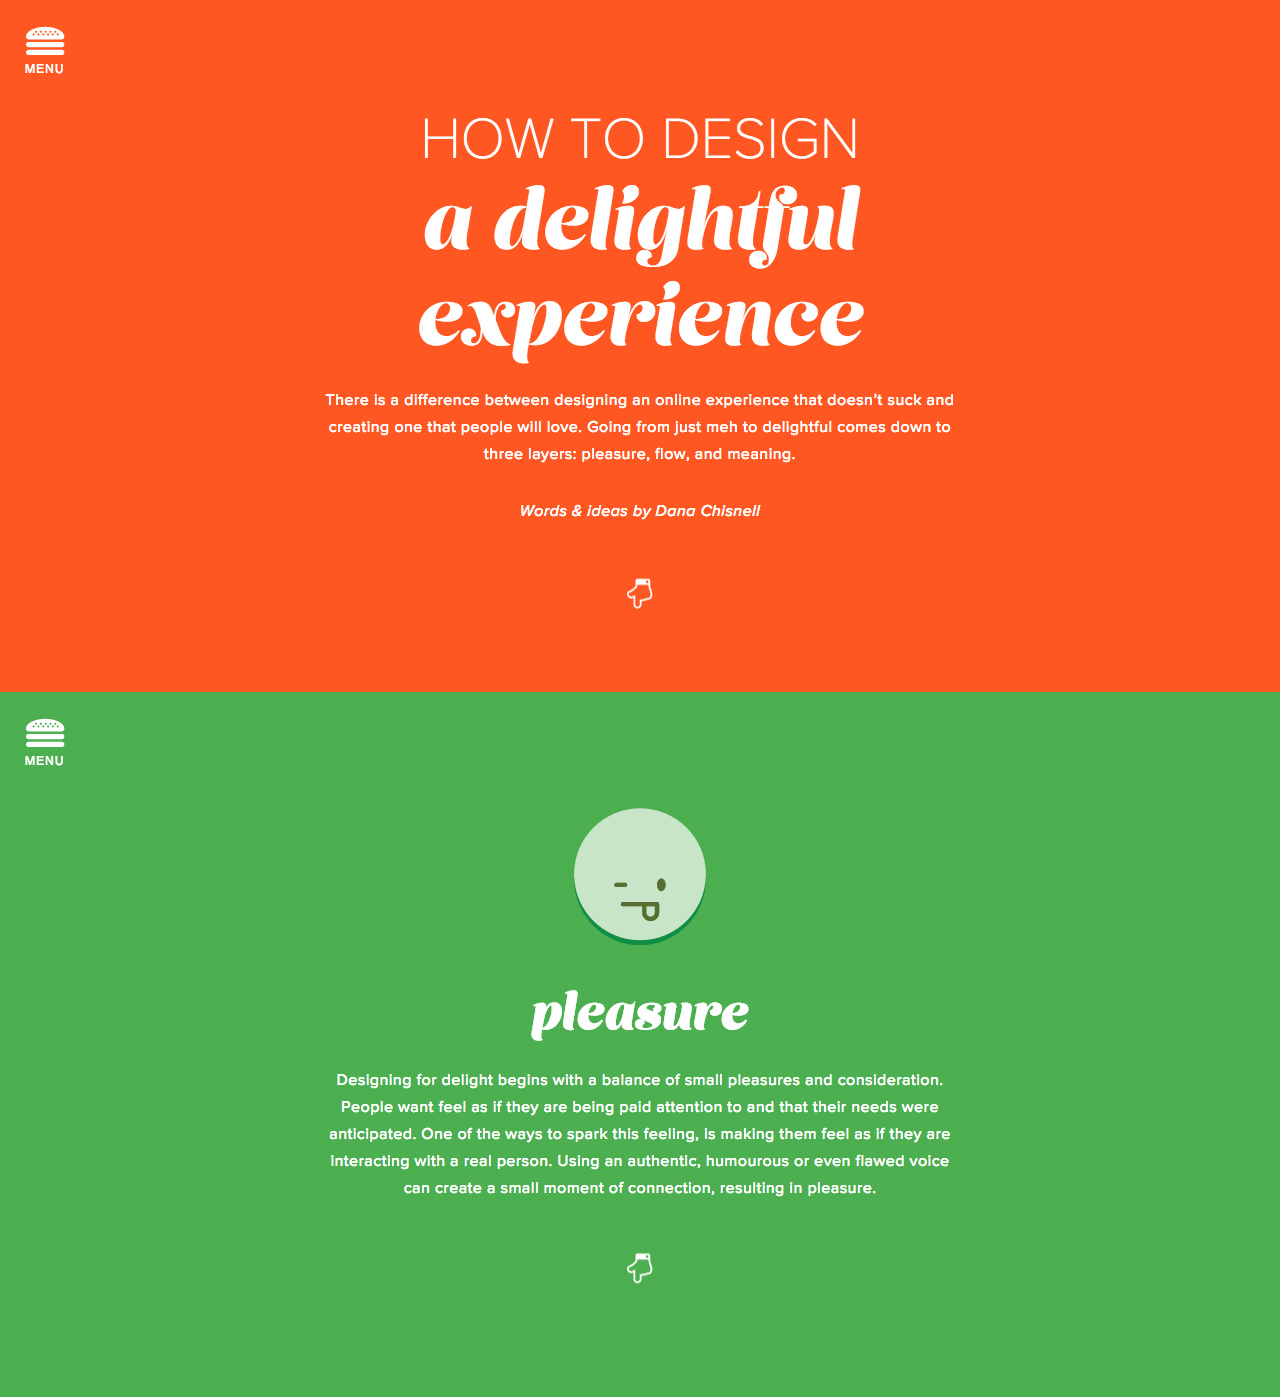 How to Design a Delightful Experience Website Screenshot